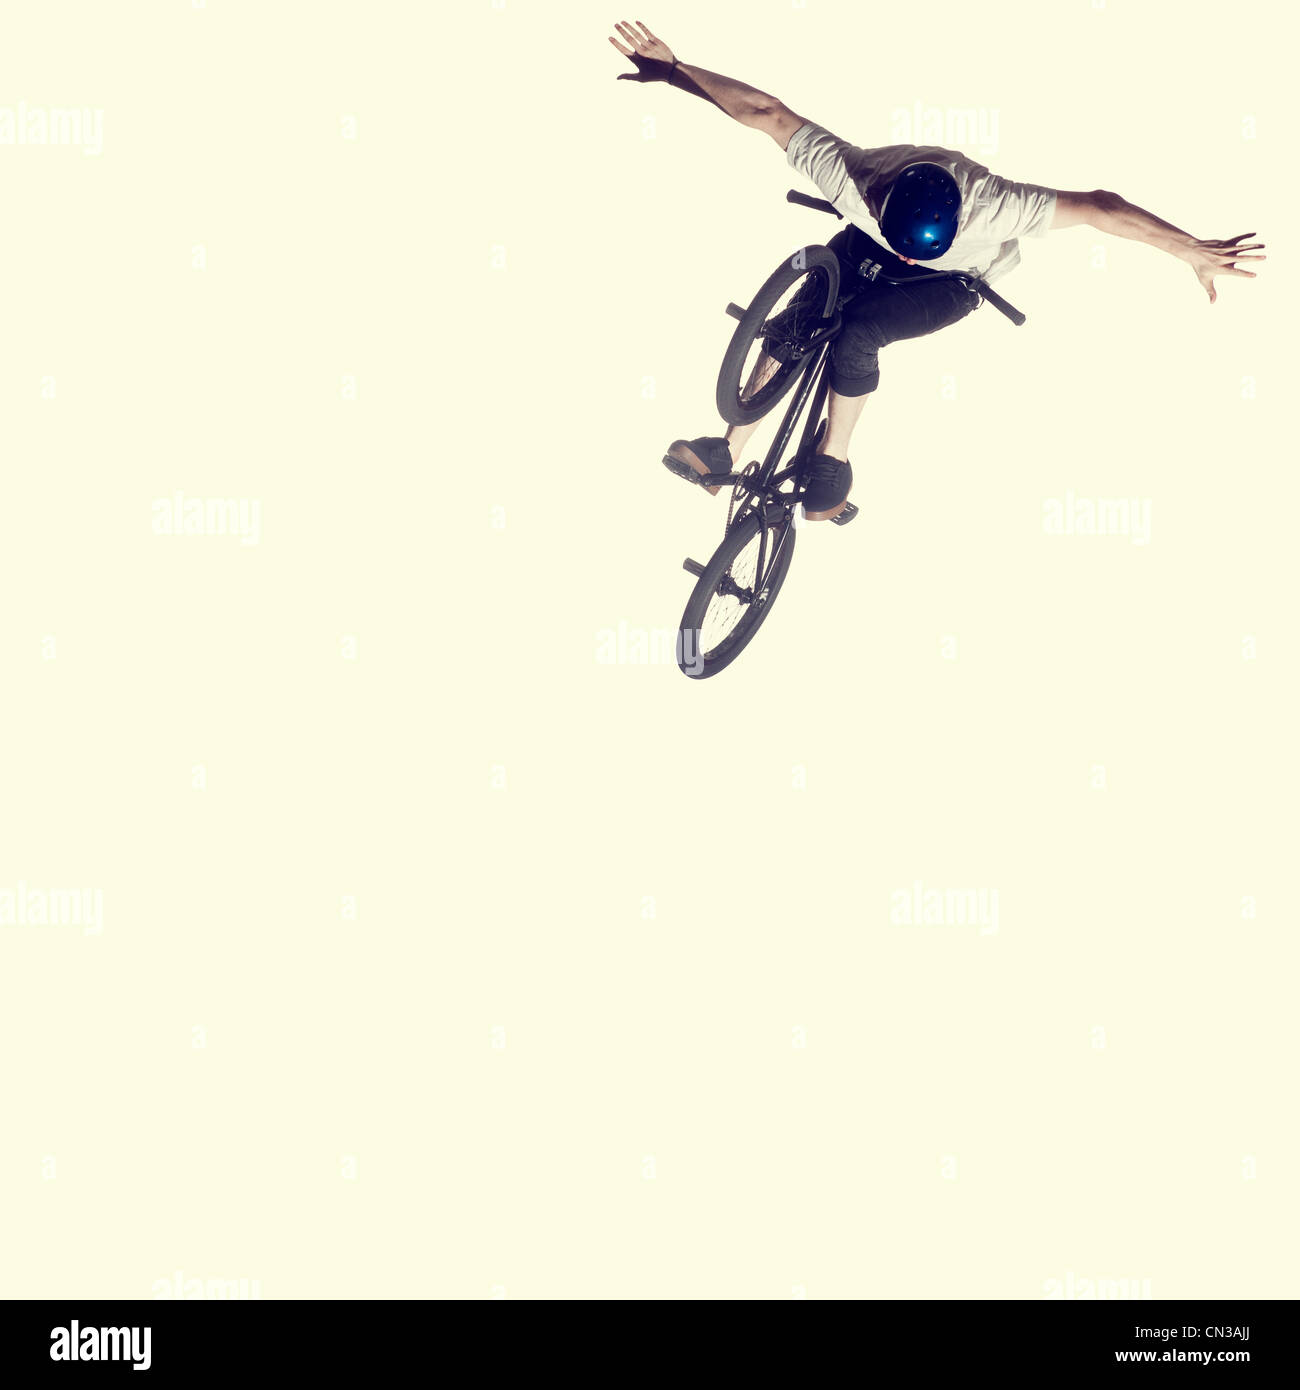 Young man on bmx bike, mid air - Stock Image